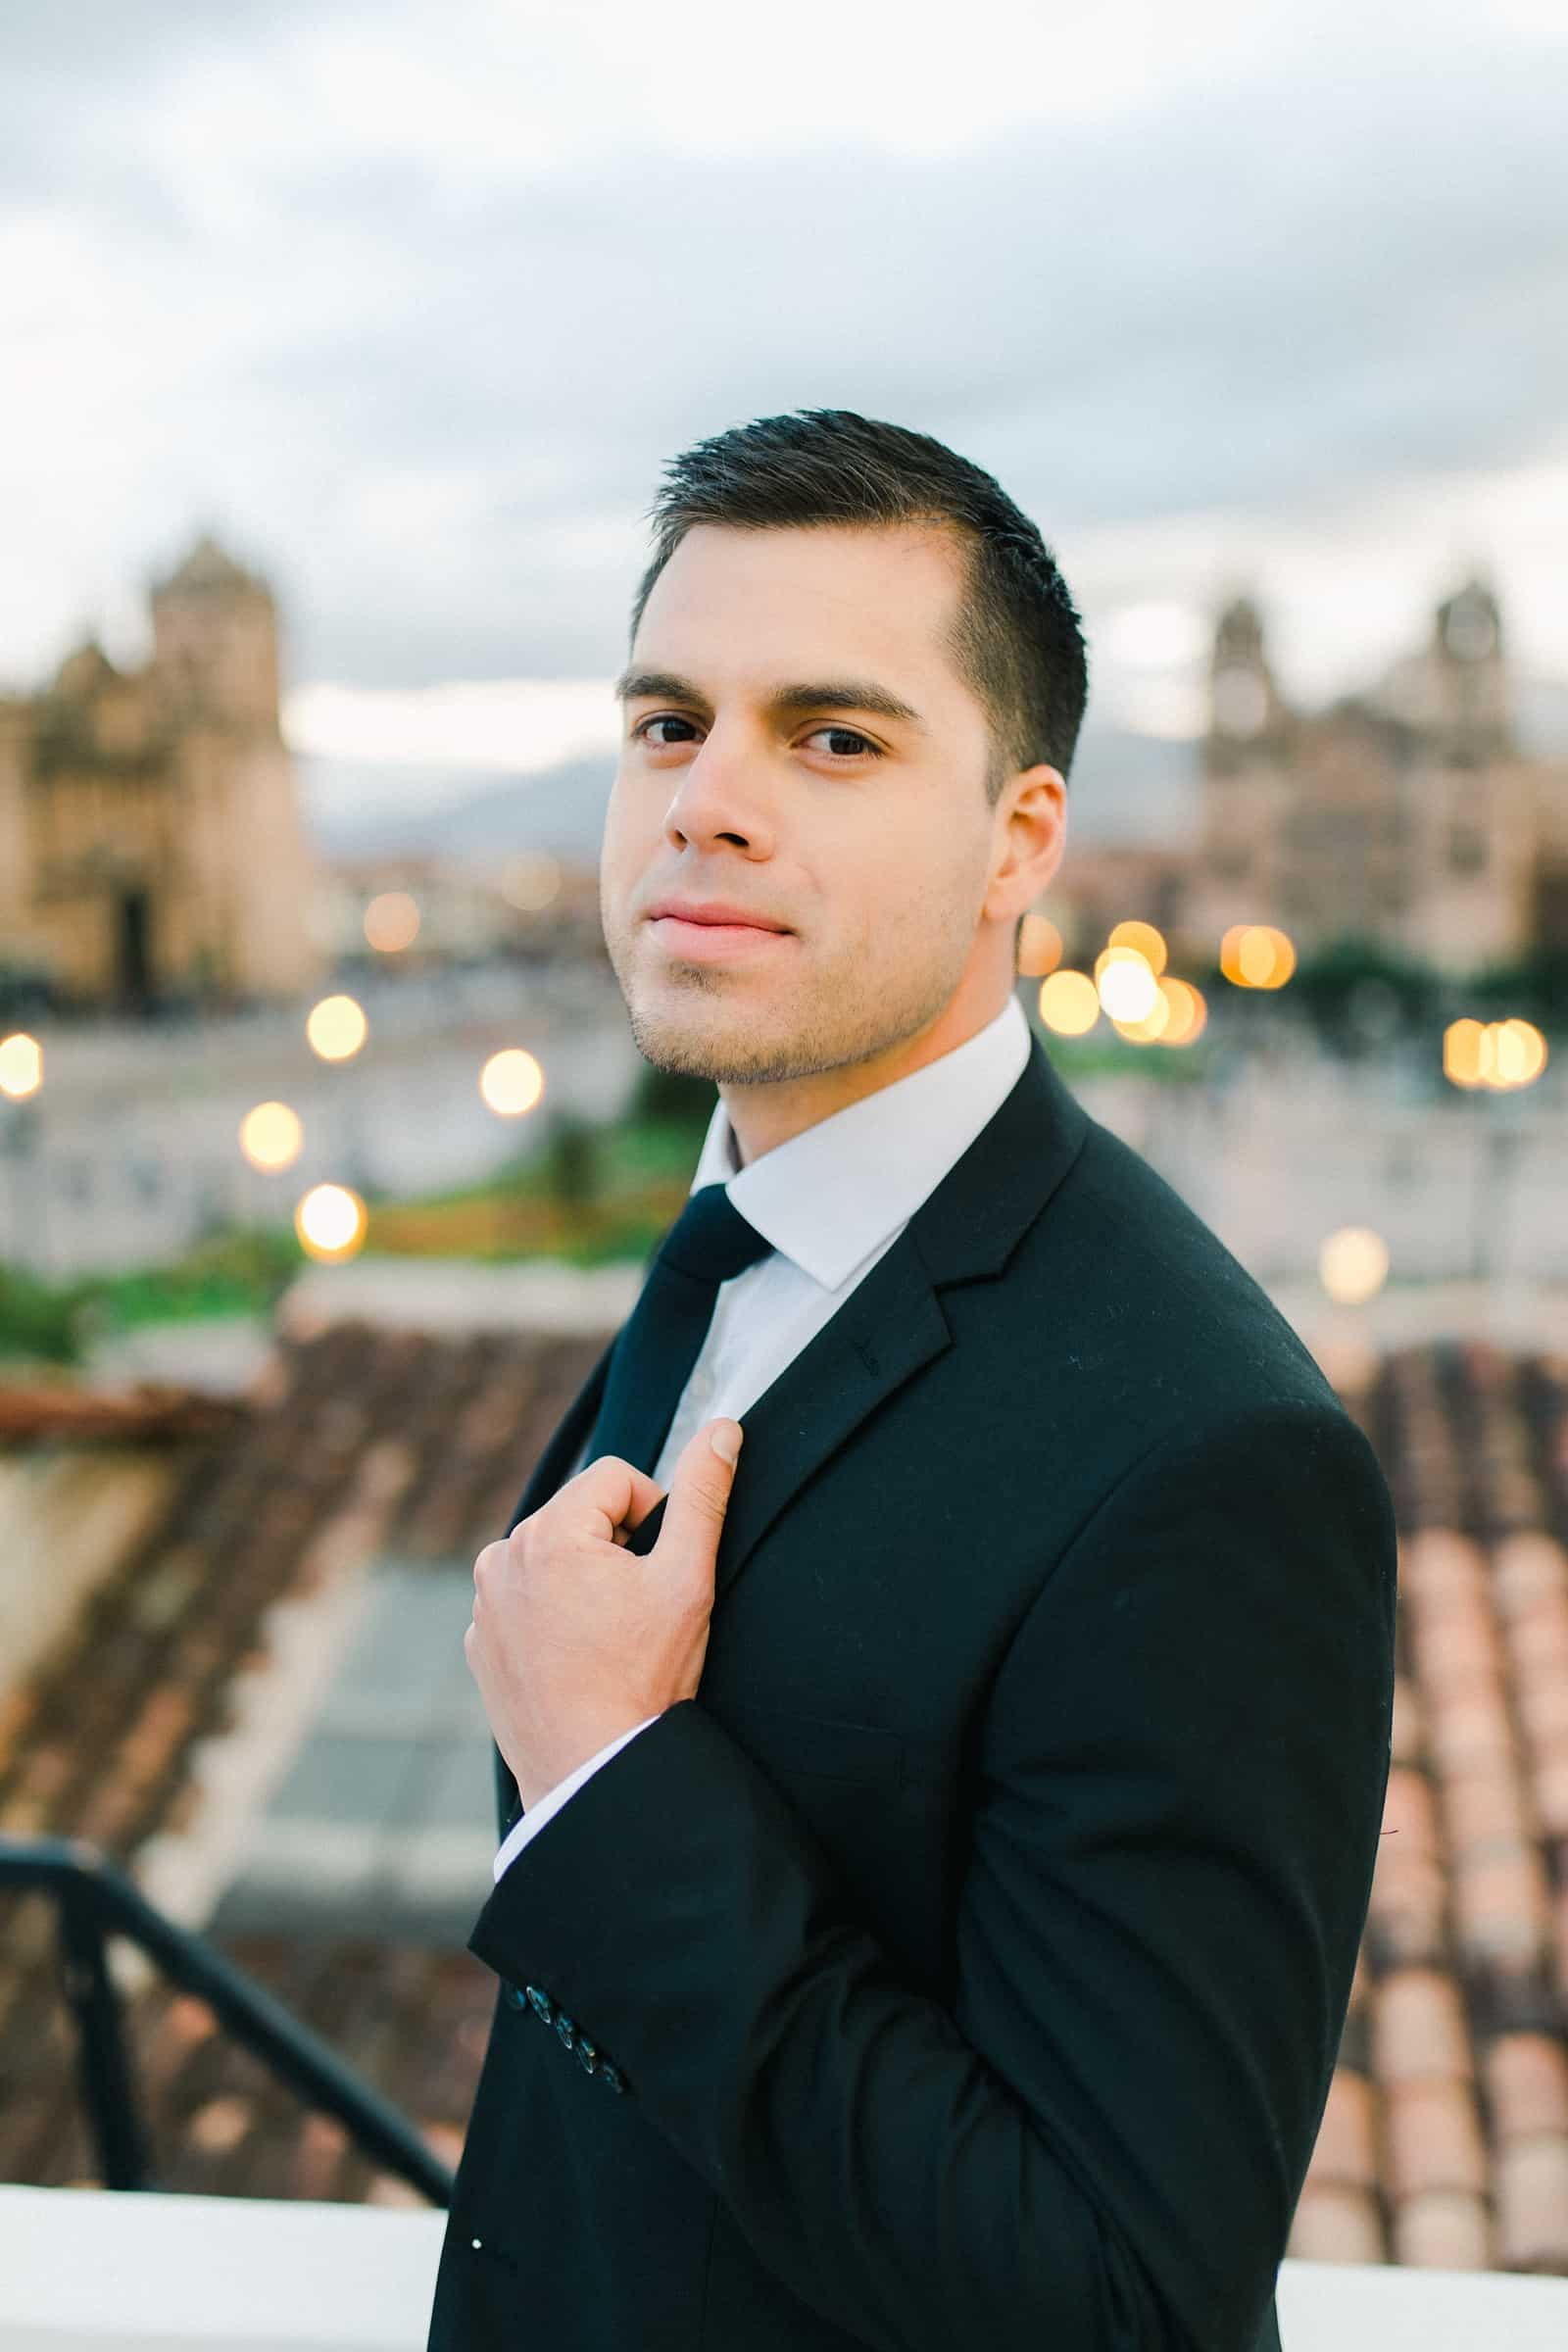 Cusco Peru Destination Wedding Inspiration, travel photography, groom in classic black suit tux with black tie